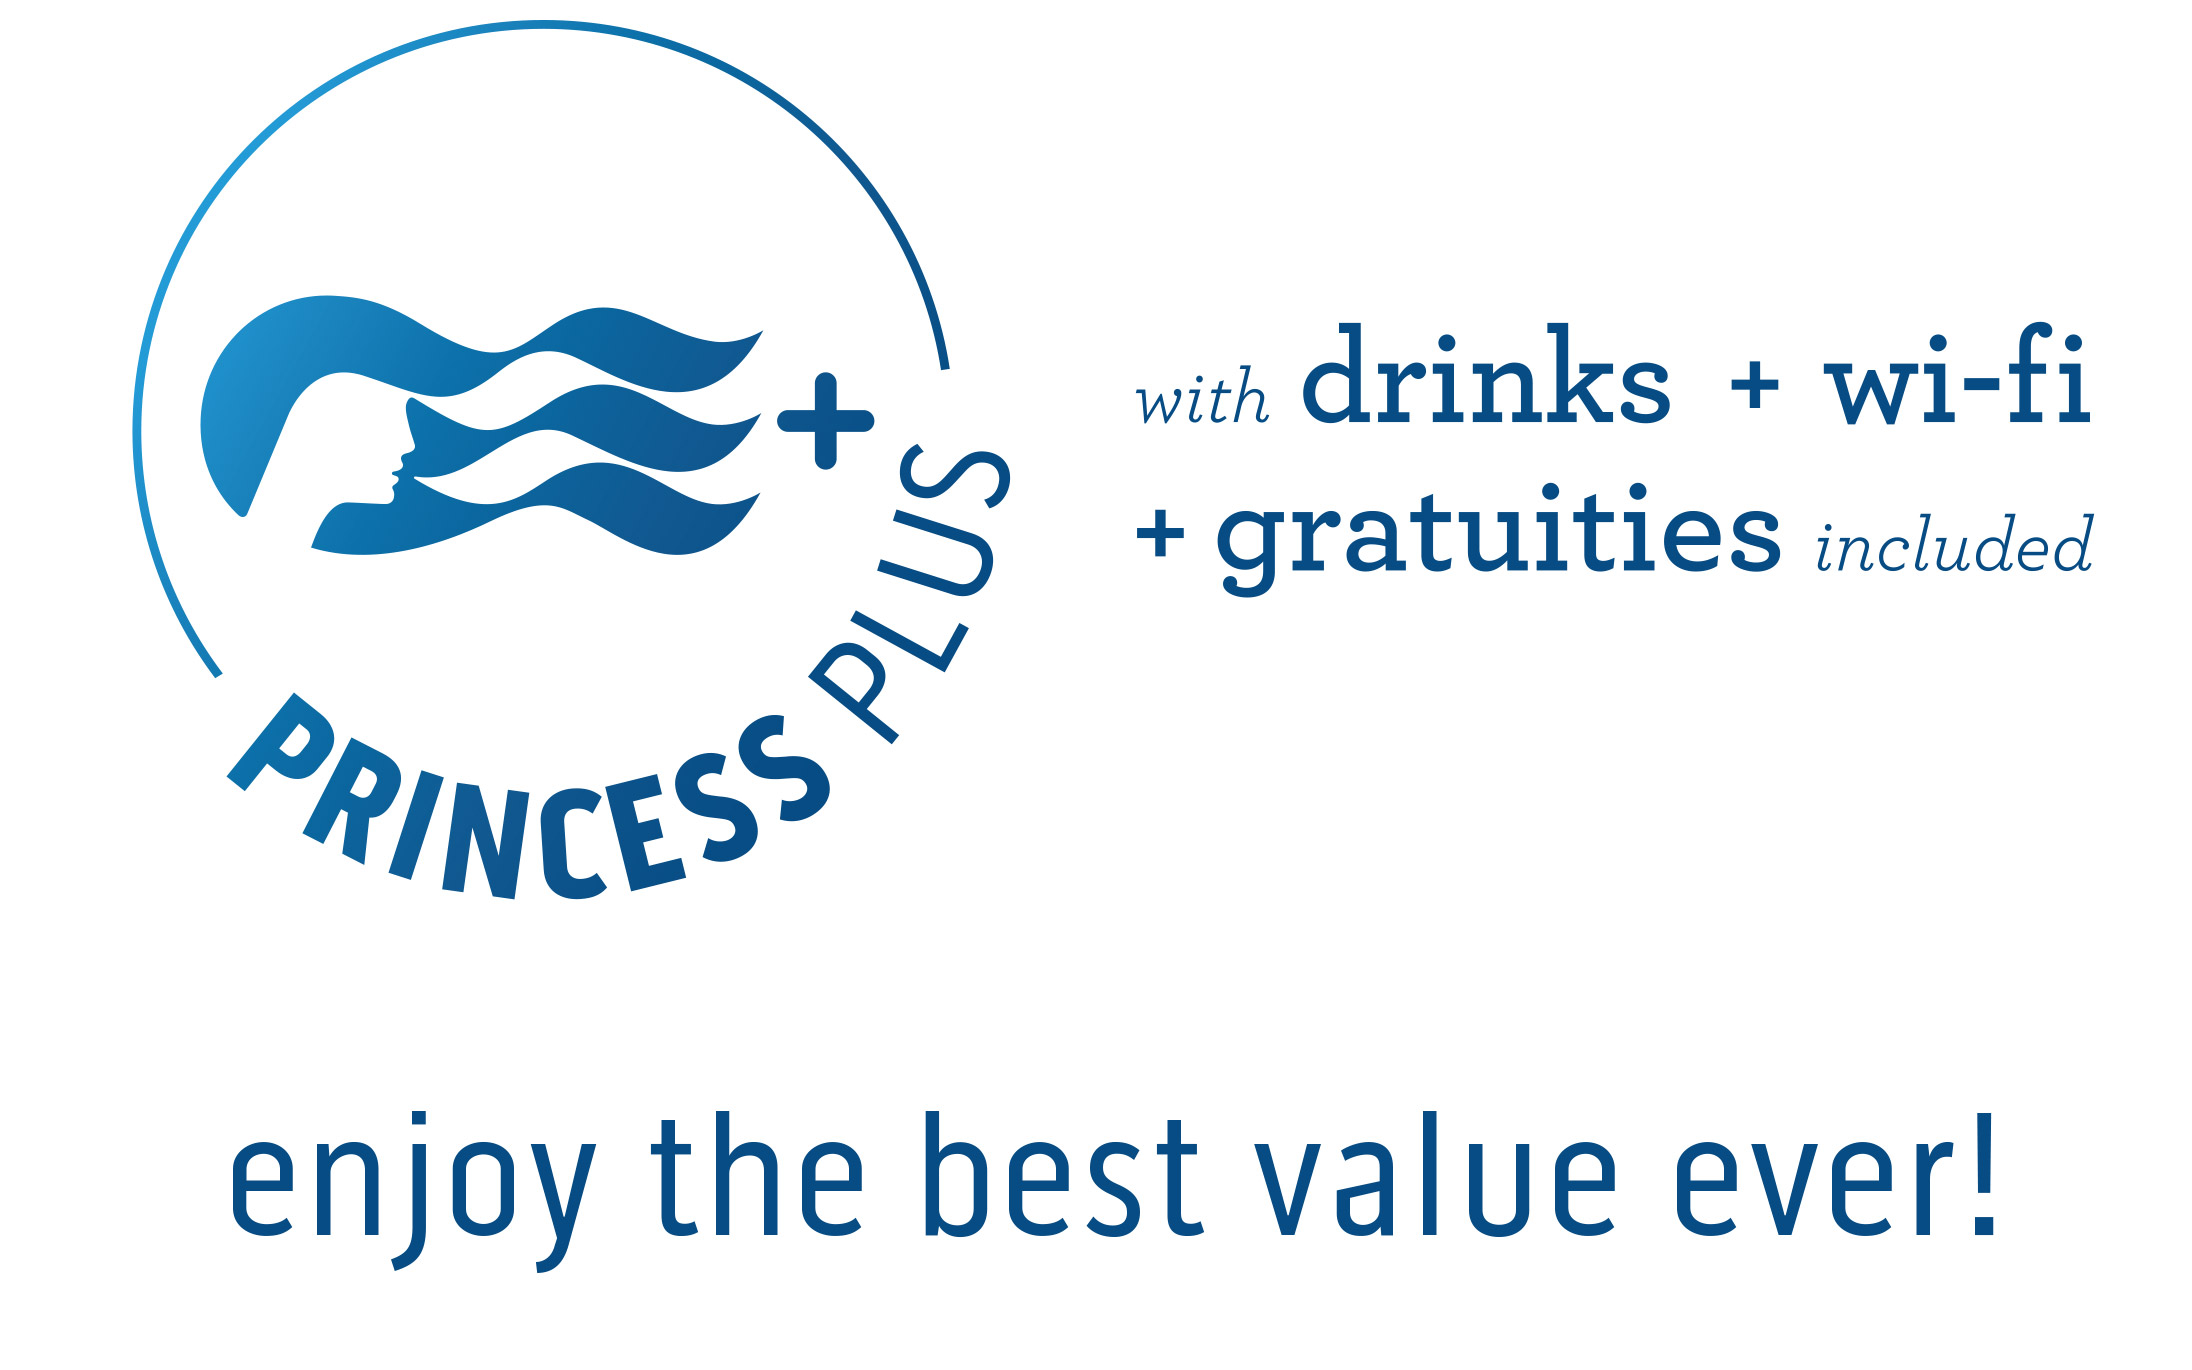 Princess Plus - Drinks + Wi-fi + Gratuities included. The Best Value Ever!